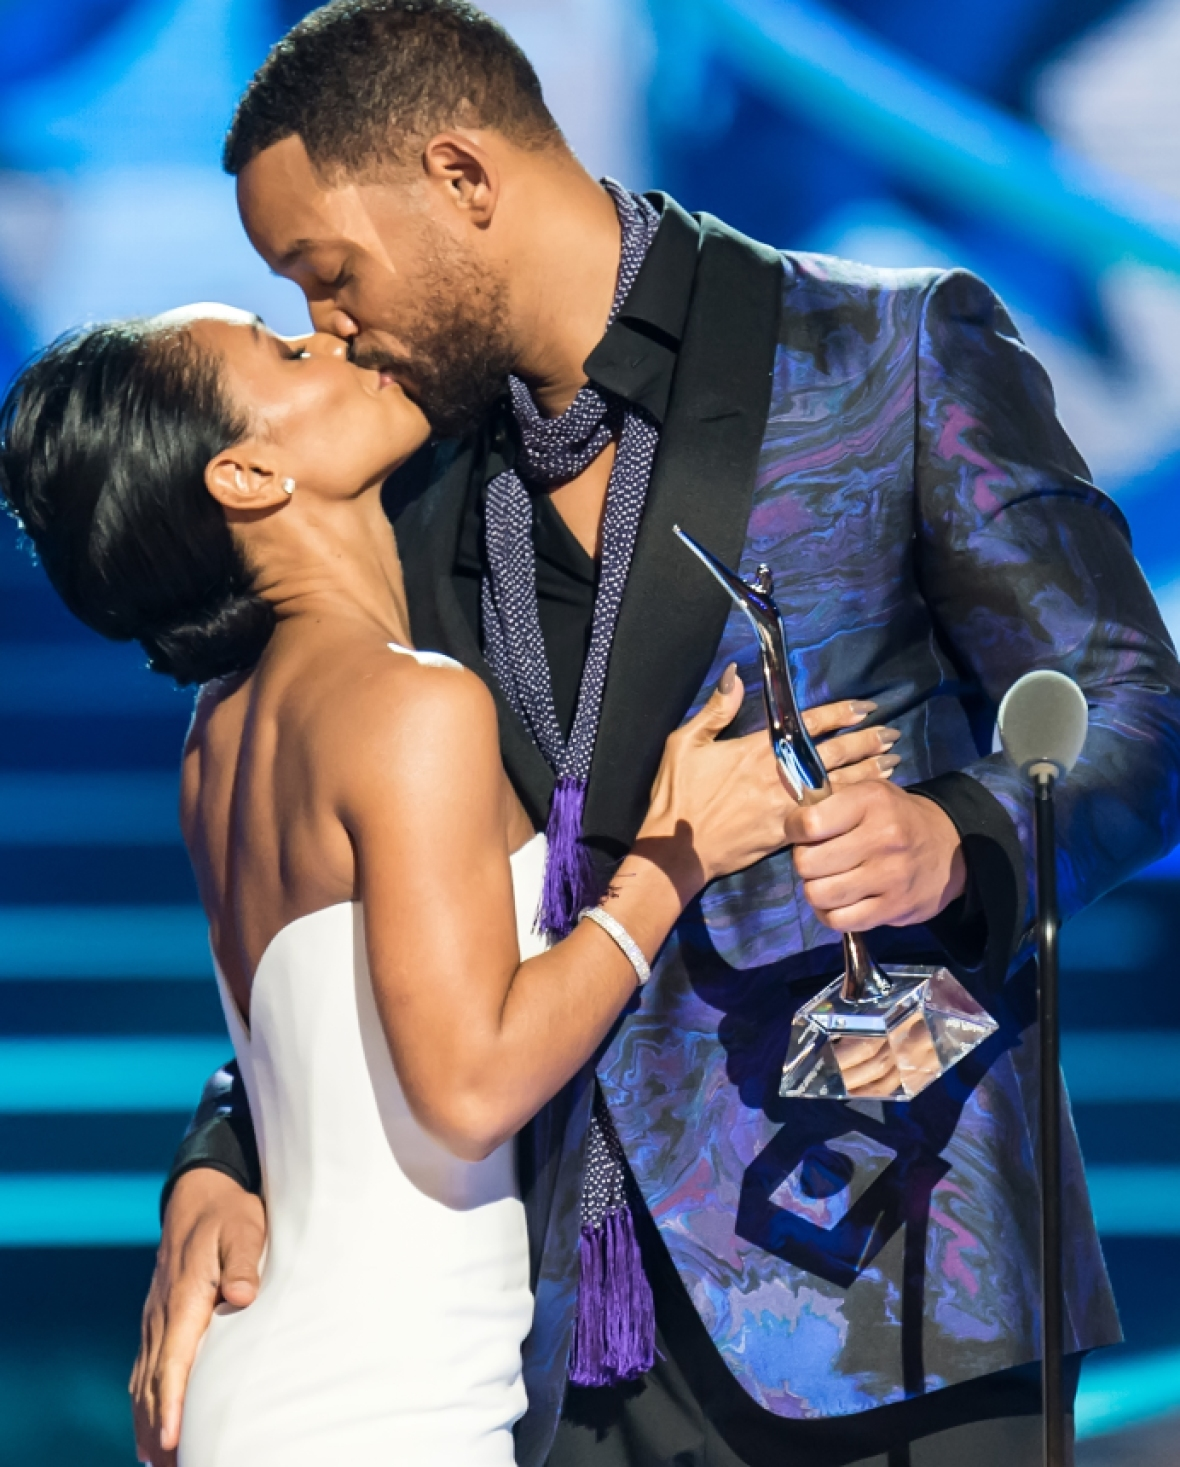 will smith jada pinkett smith kissing